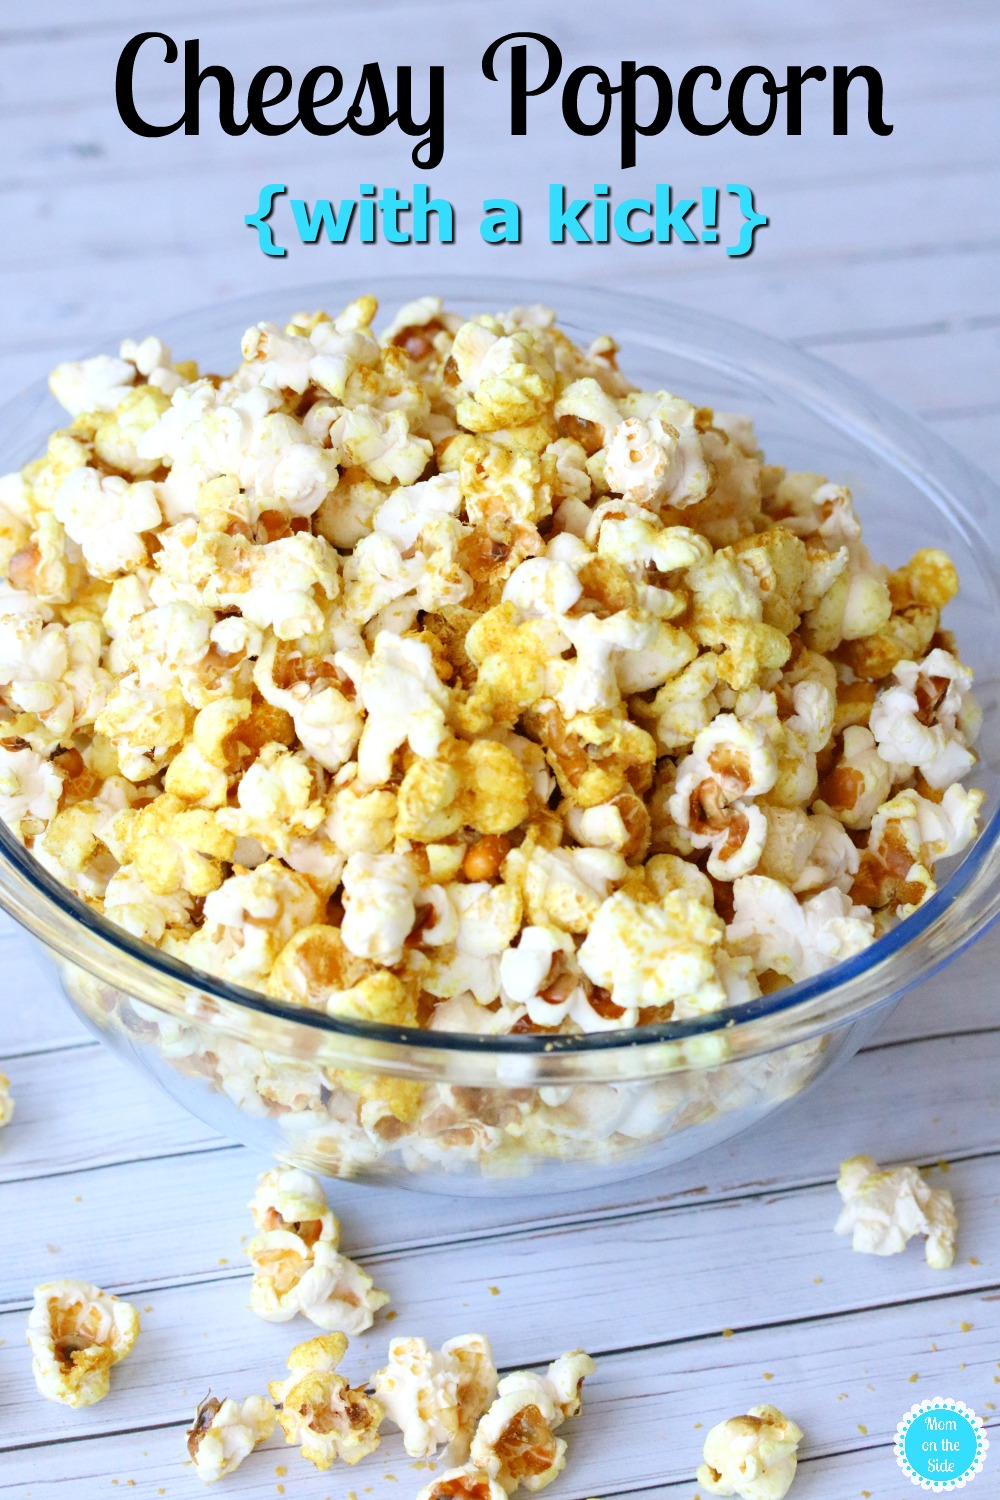 This Cheesy Popcorn with a Kick is going to be a favorite for family movie nights! Plus, it can be made with both homemade popcorn and microwave popcorn!